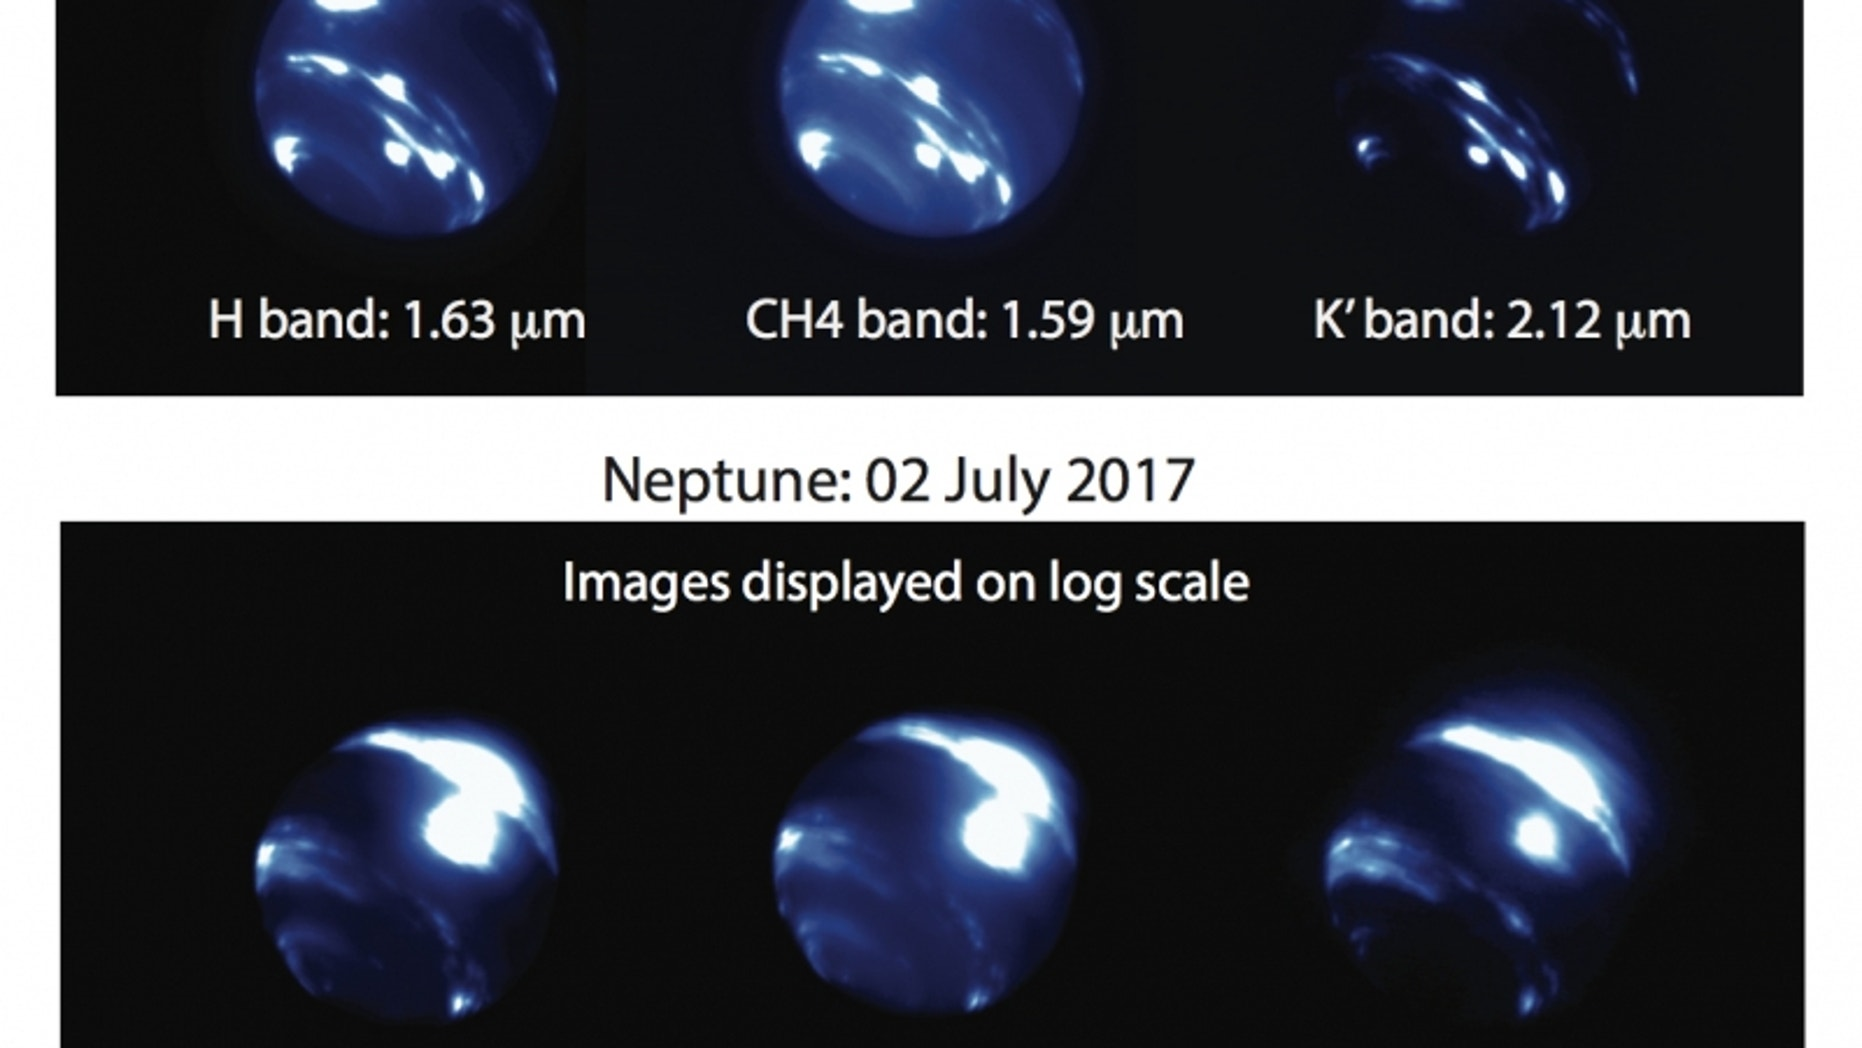 Researchers observing Neptune with the Keck Observatory spotted a massive, bright cloud complex crossing the planet's equator. It brightened considerably between June 26 and July 2.